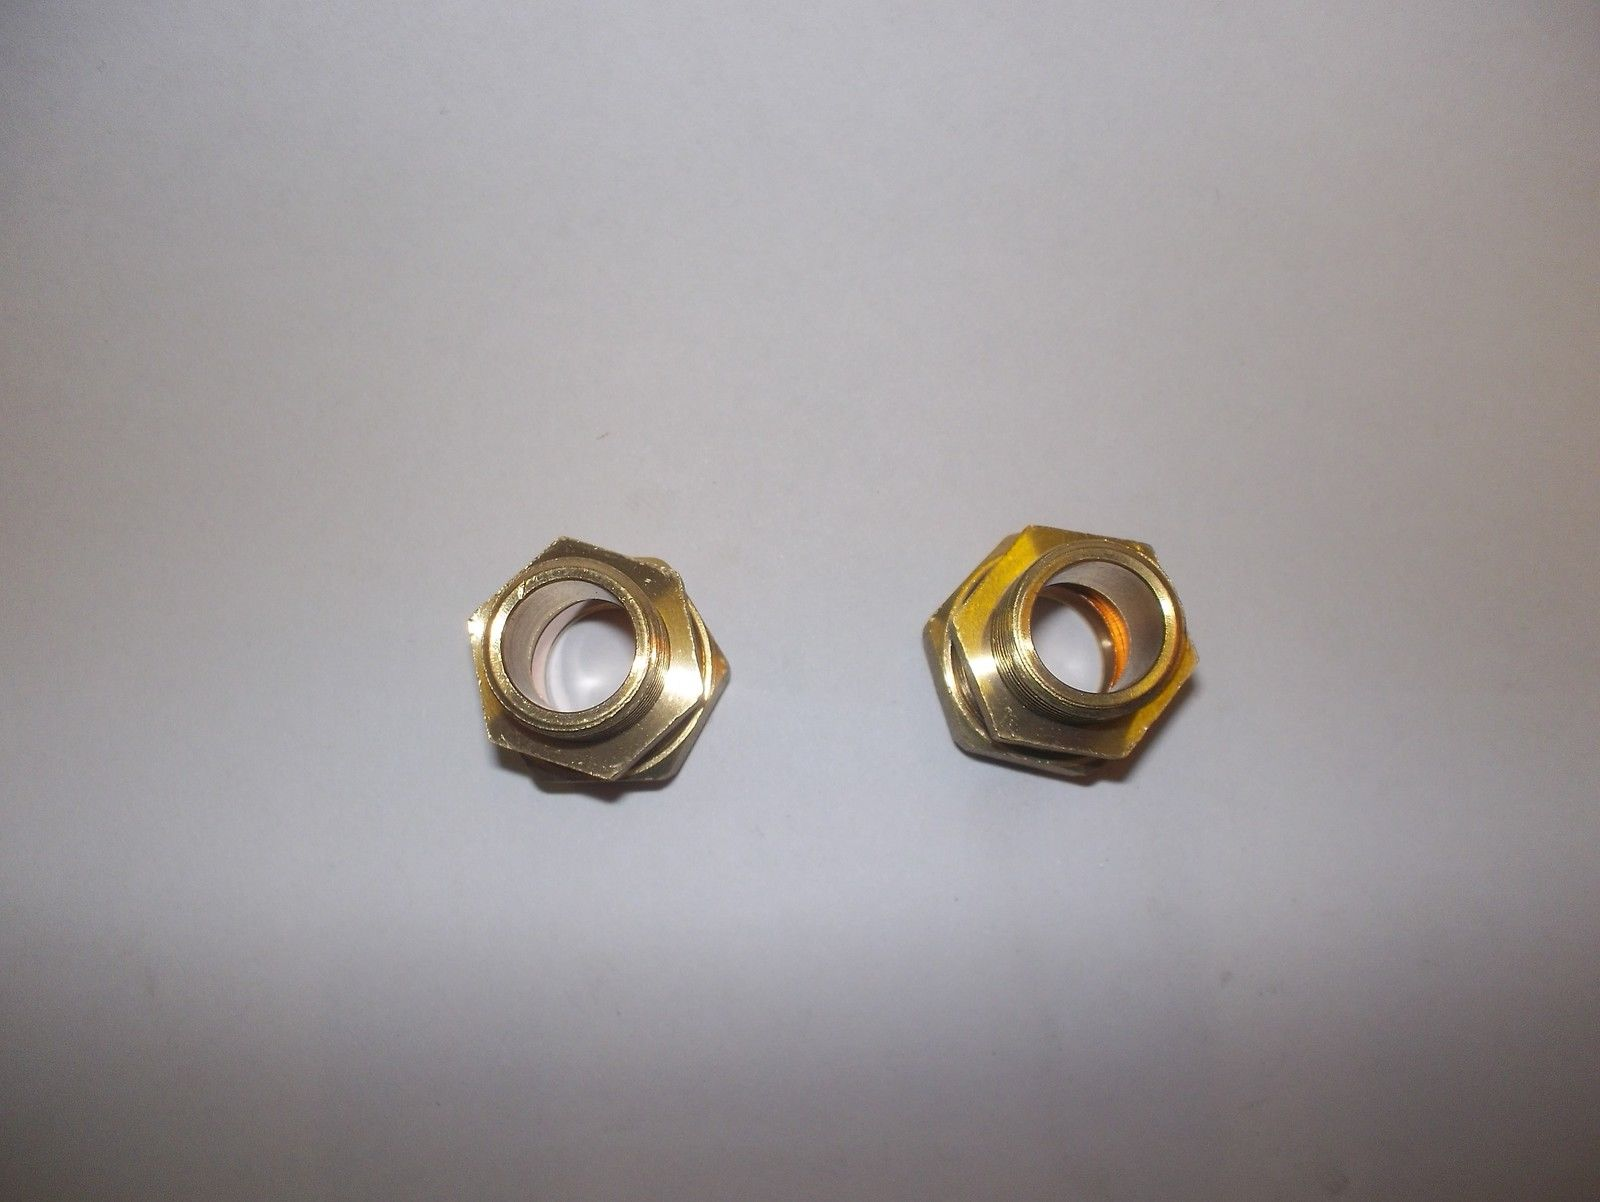 Buy 2 X Male Flexi To Copper Pipe 15mm X 3 8 Quot Tap Adapter